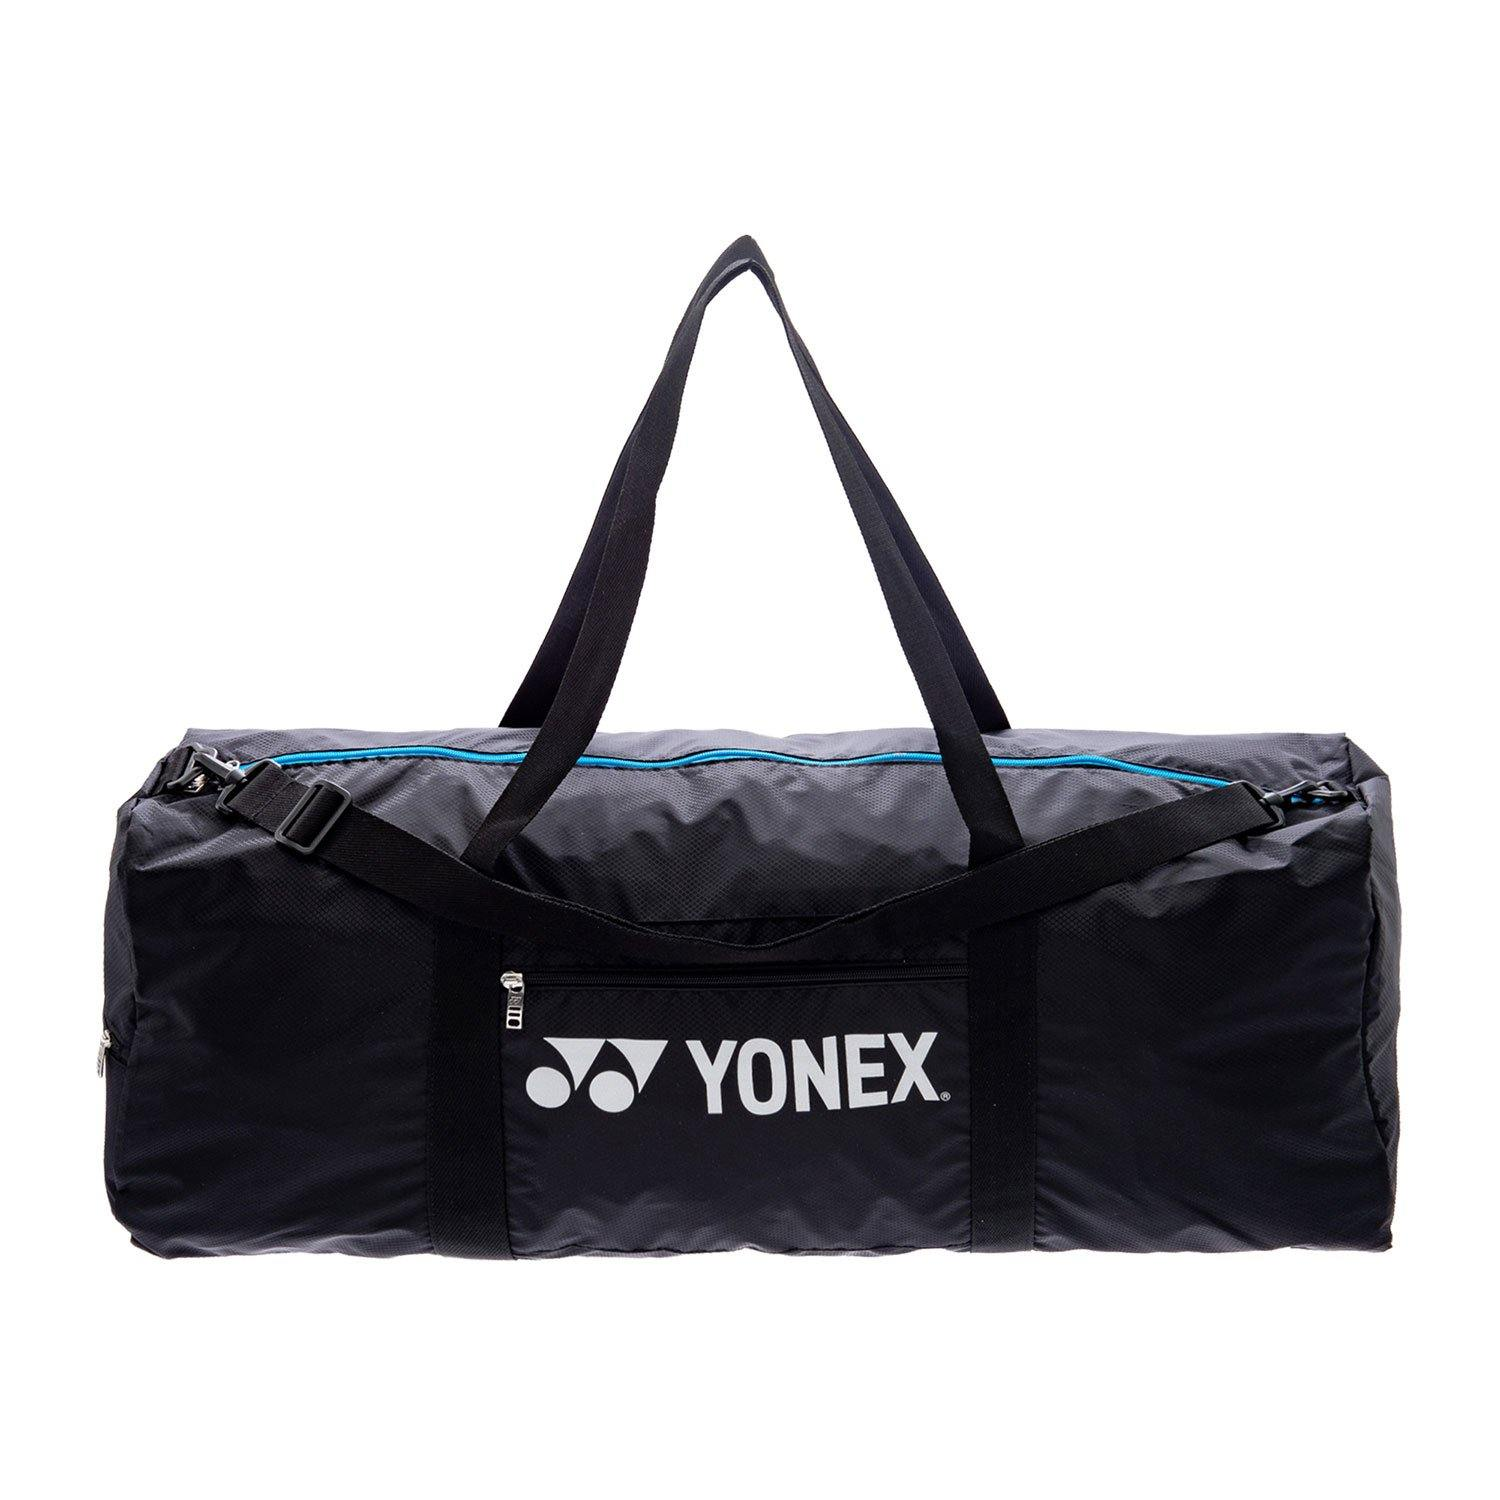 25698ca572 Yonex 1911EX Rectangular Gym Bag – Yumo Pro Shop - Racquet Sports online  store